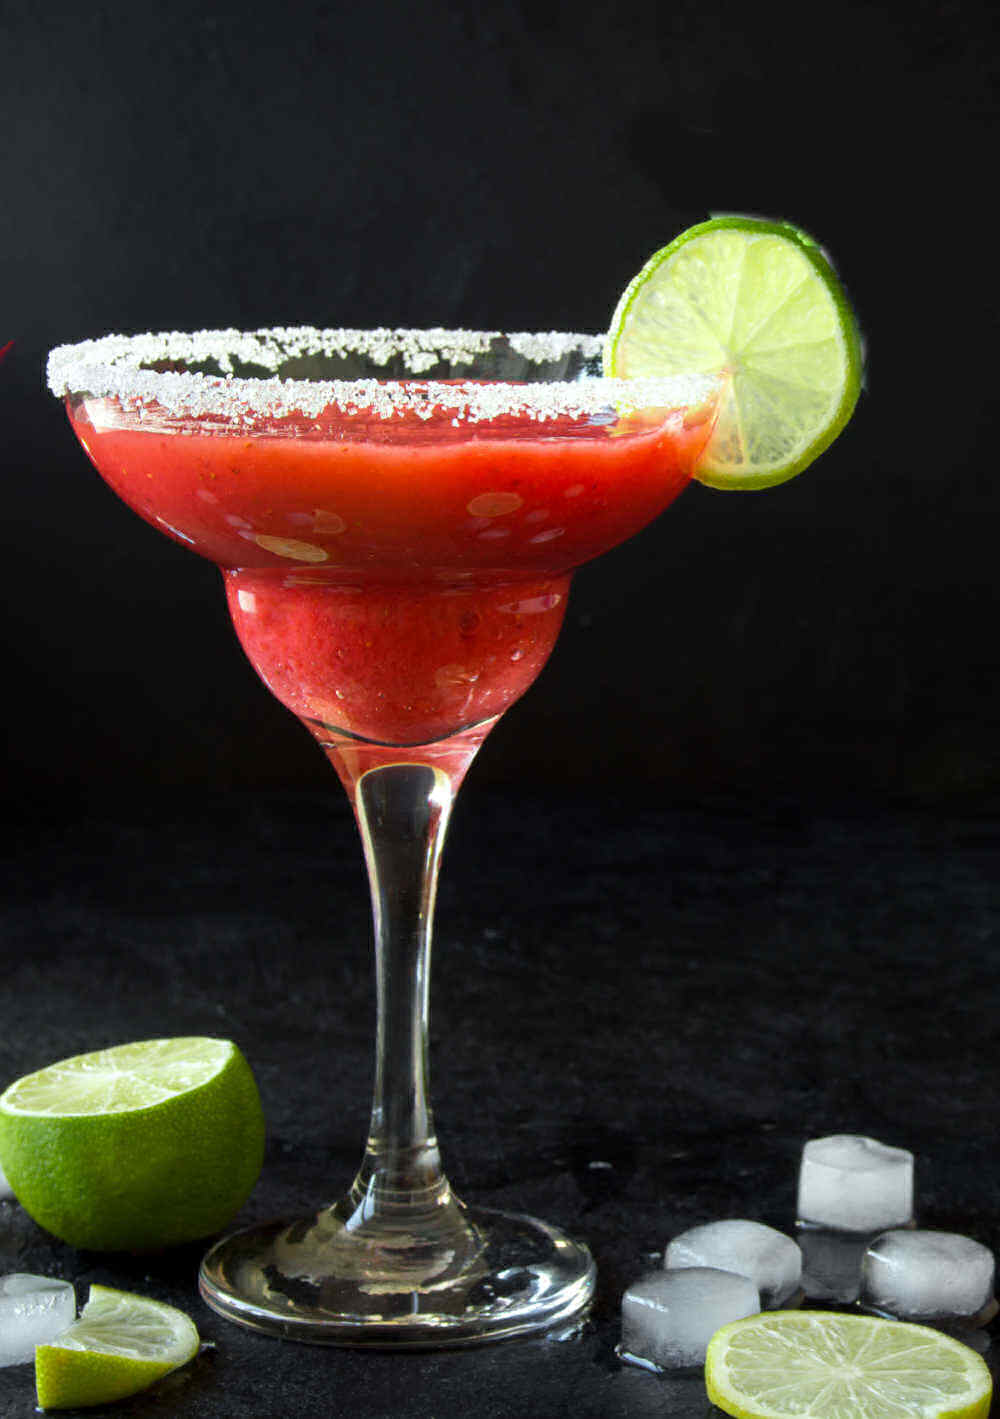 Slushy strawberry drink in a martini glass with salt and lime.